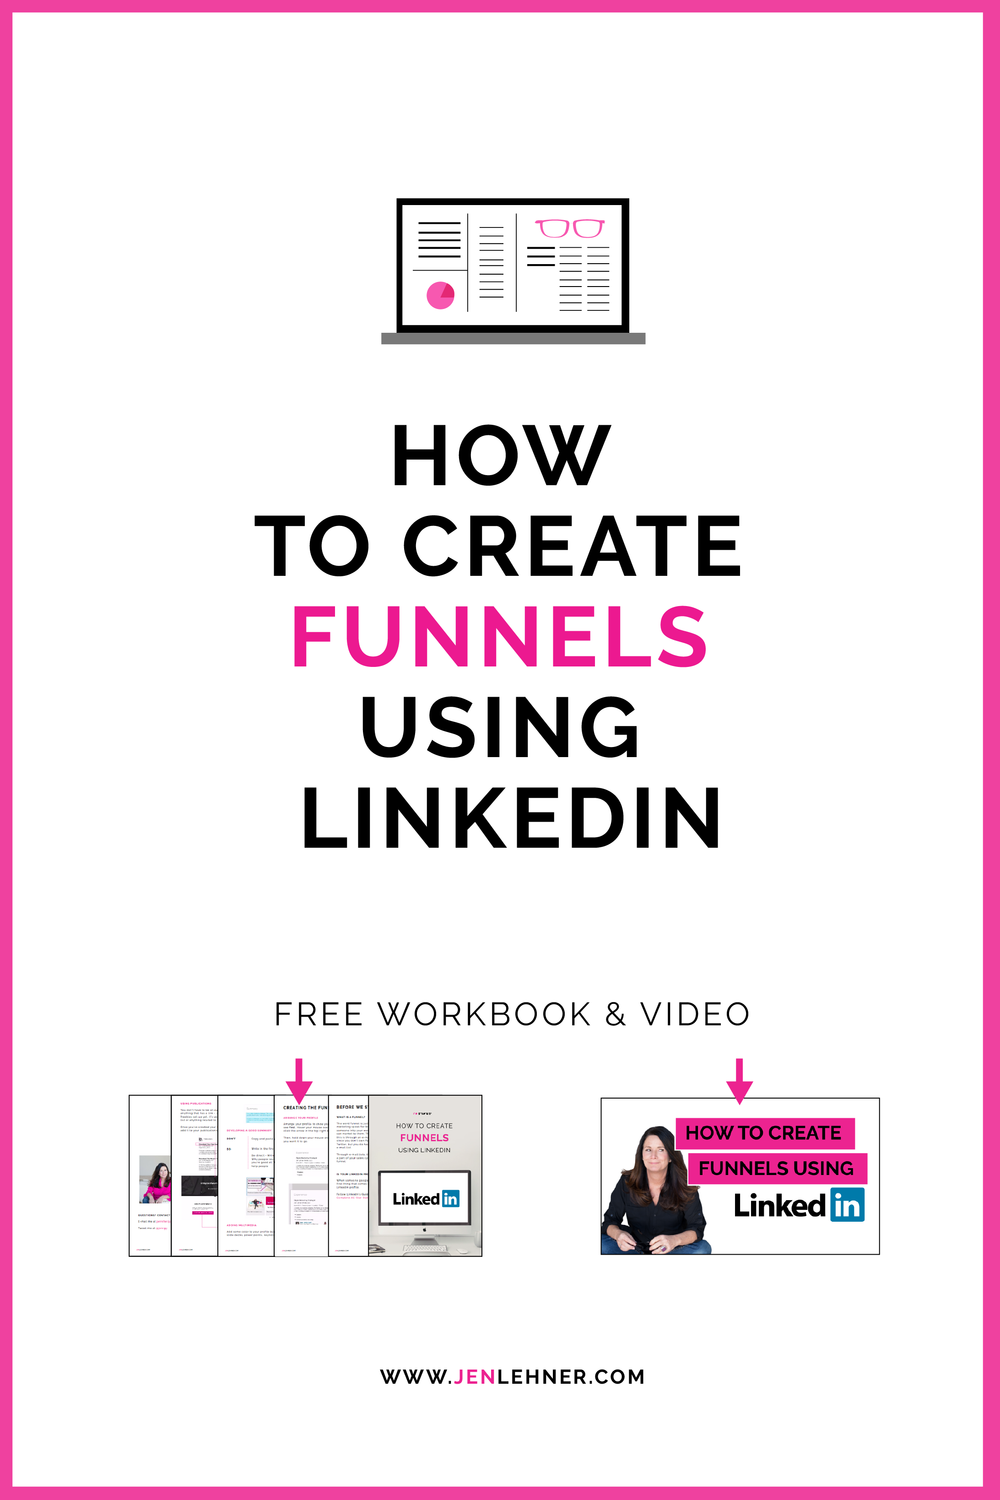 HOW TO CREATE FUNNELS USING LINKEDIN